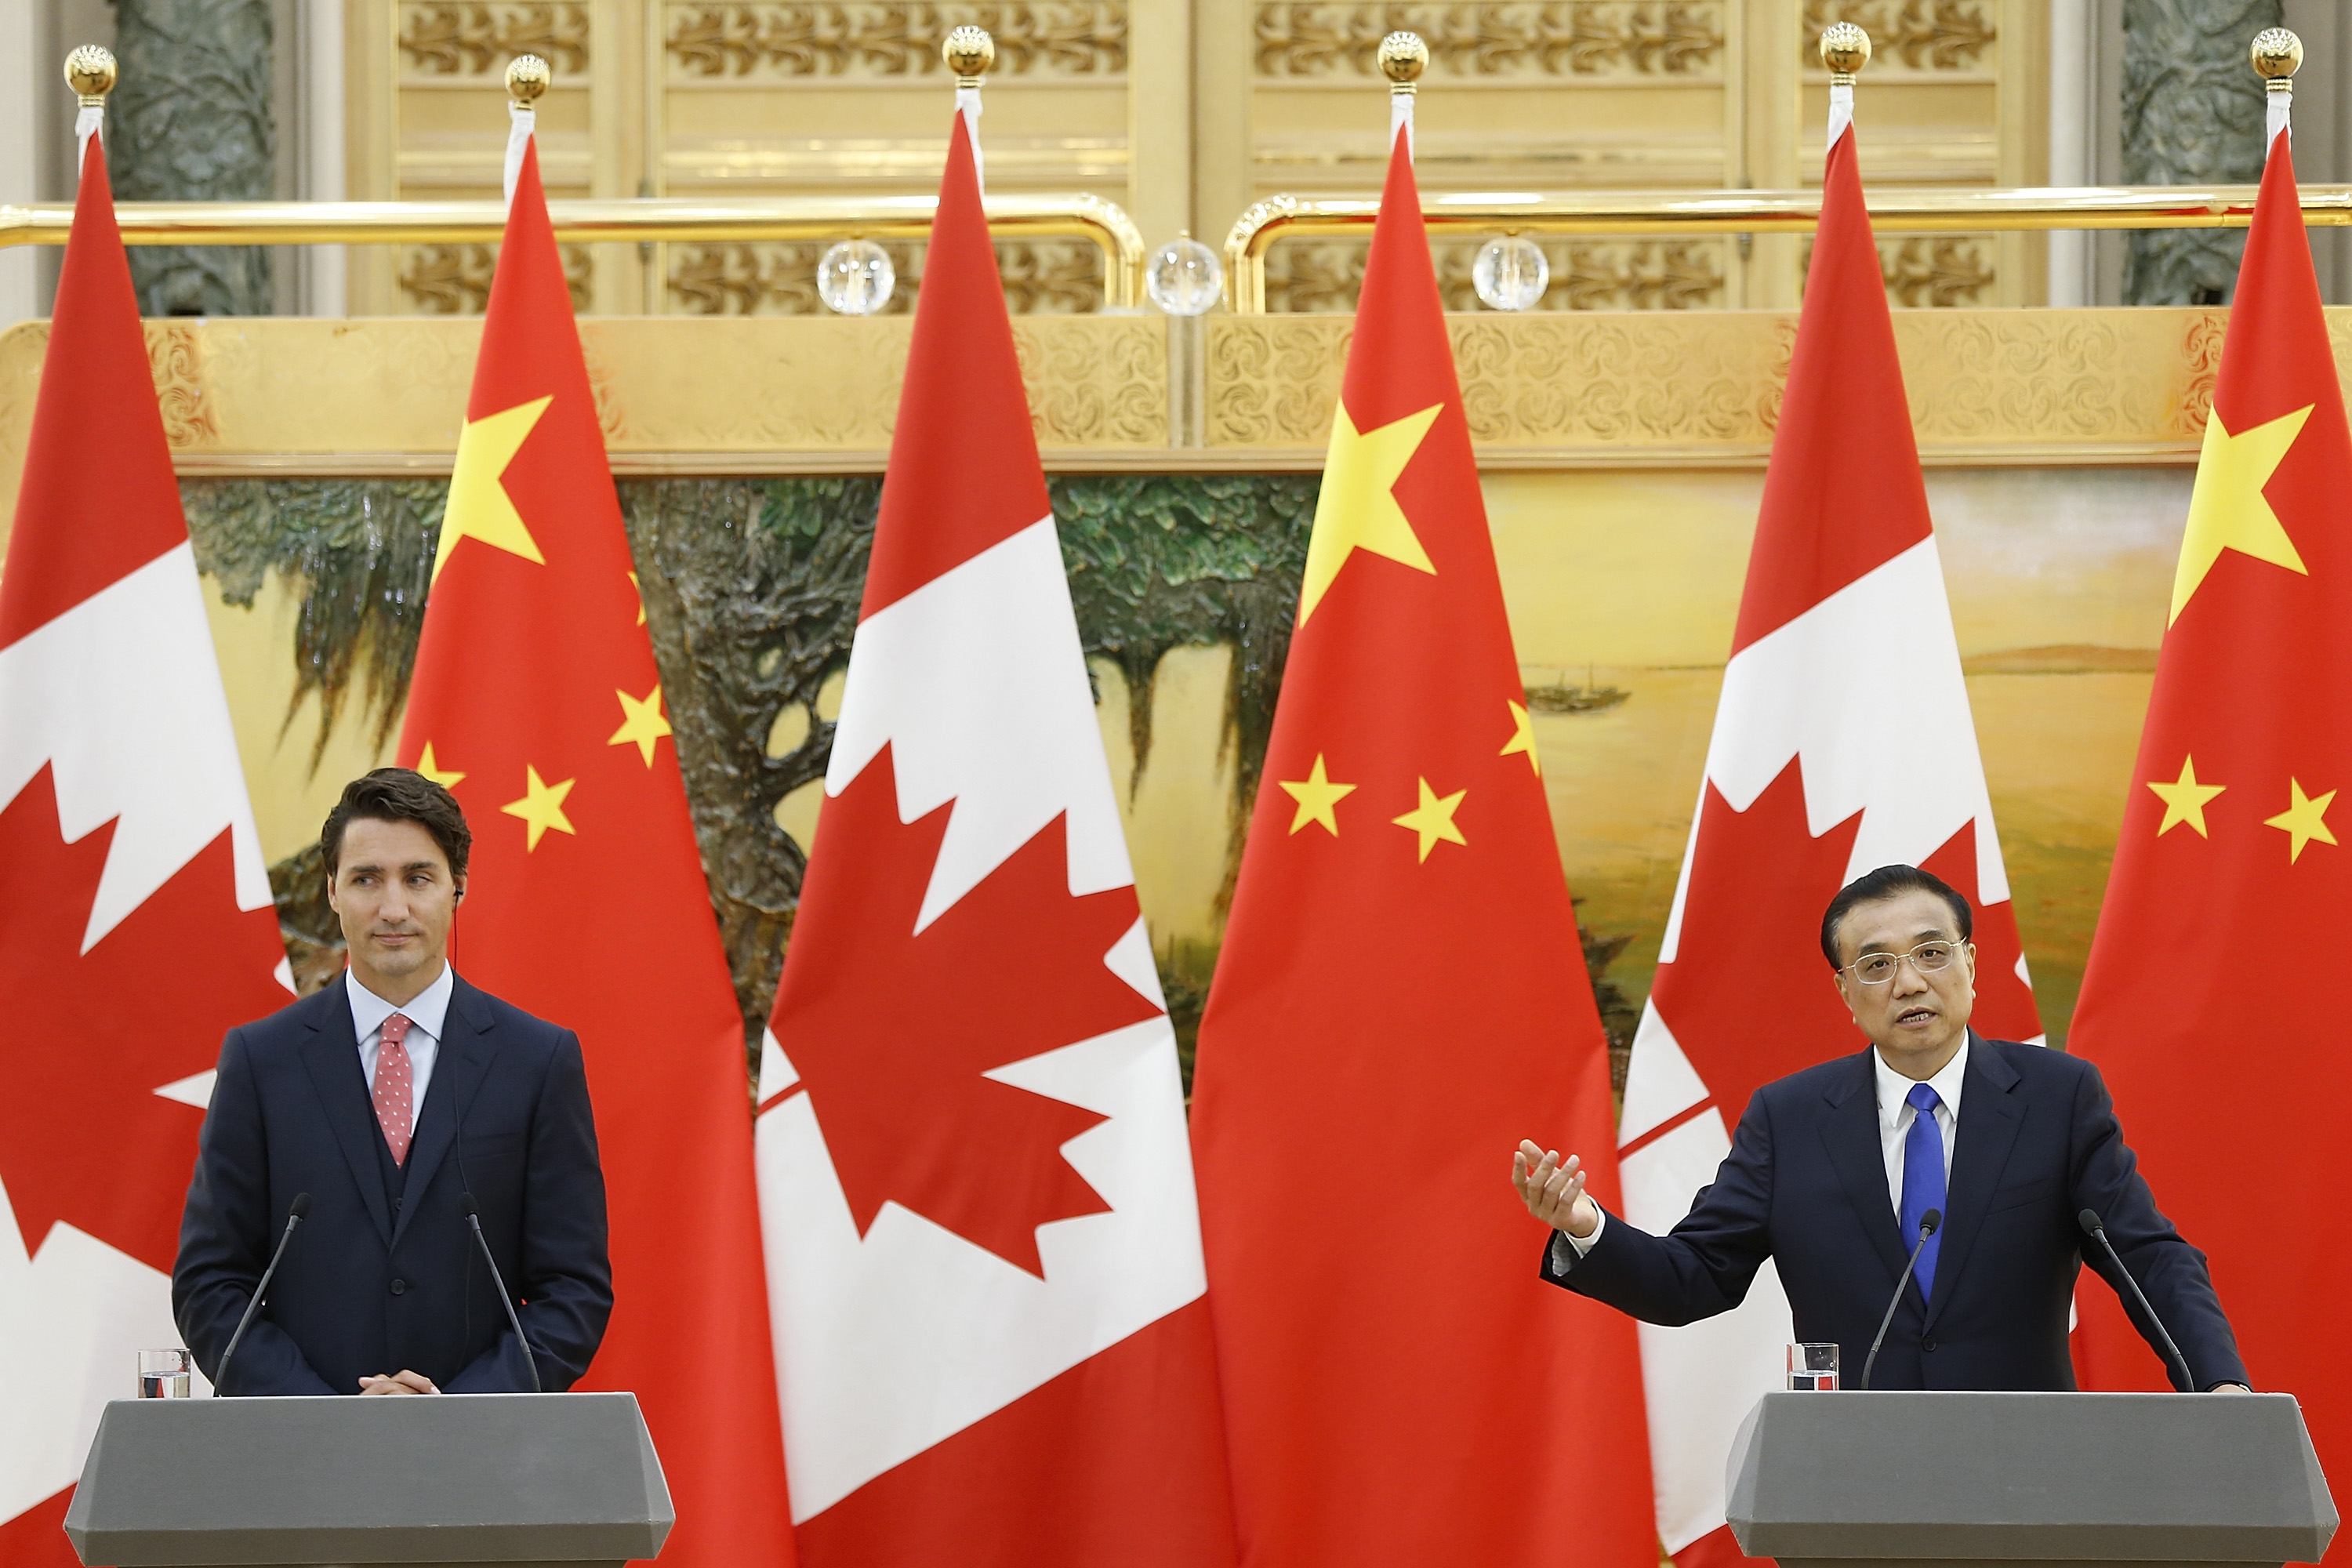 Pro-Beijing Groups Rally Support to Put on Big Welcome for Chinese Premier's Canada Visit